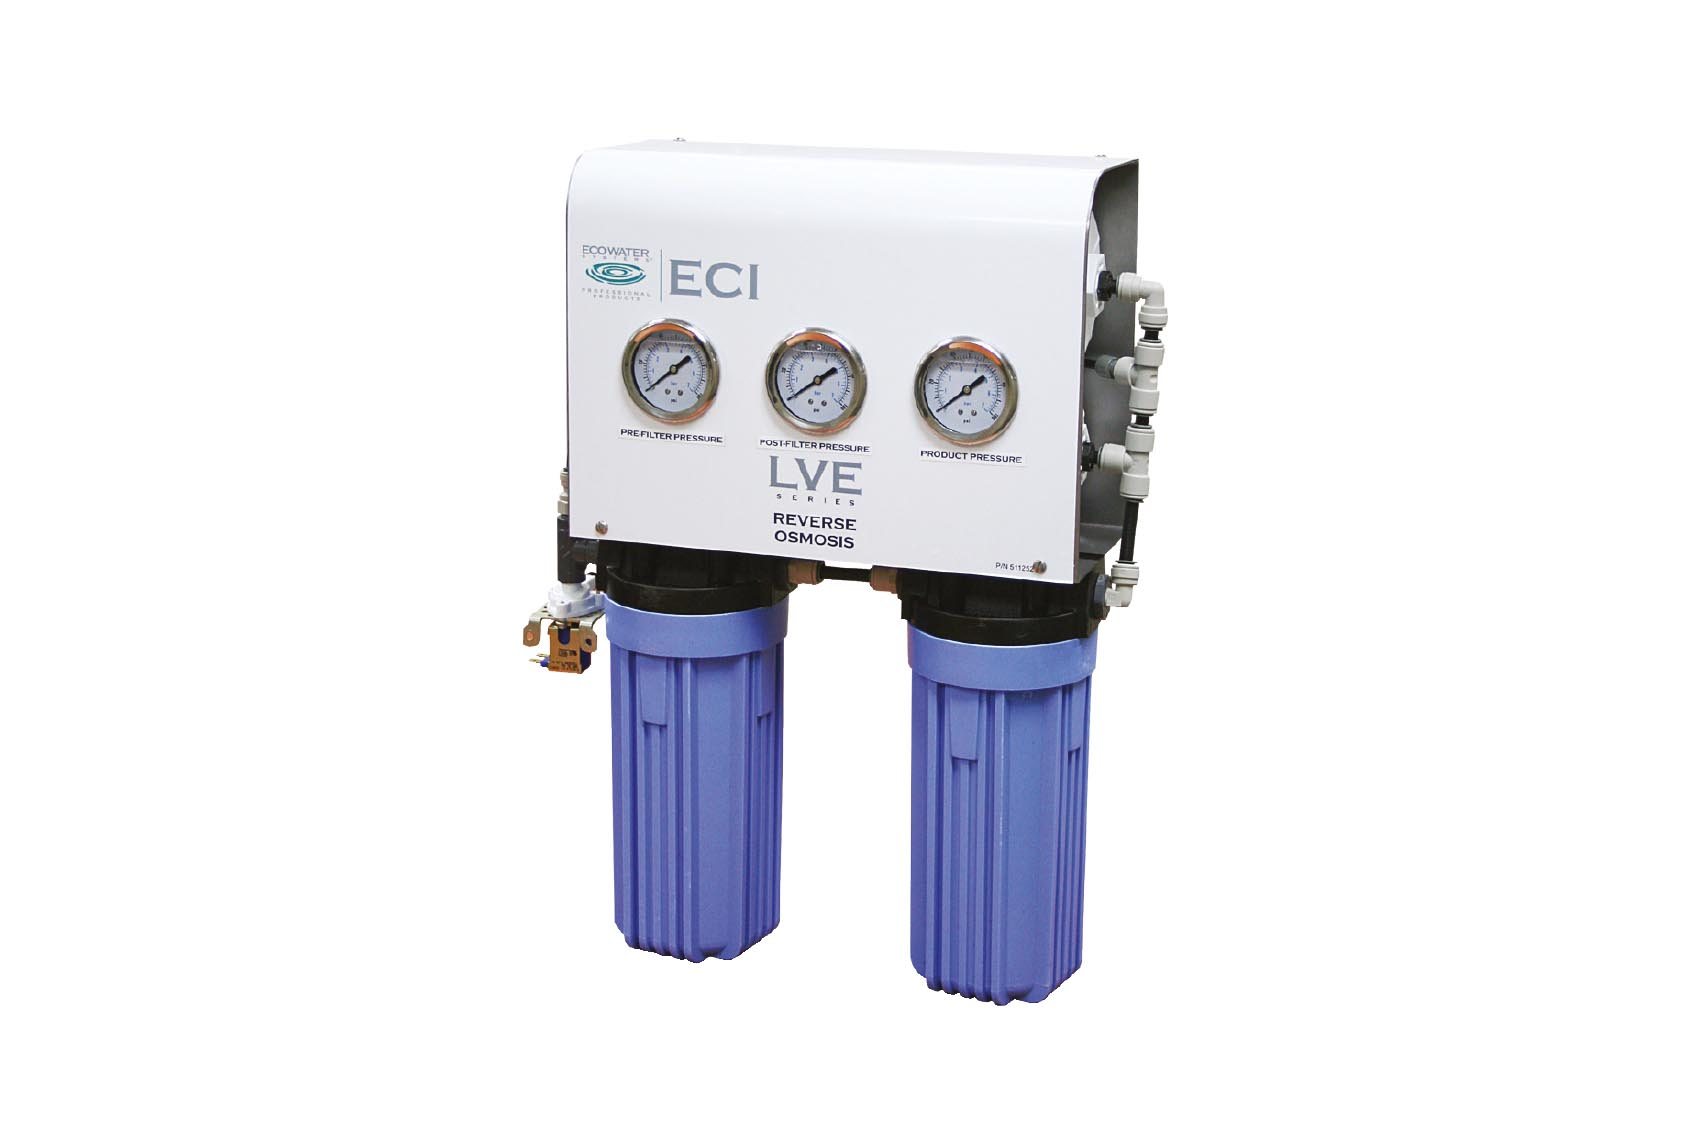 WRC Purifying - Ecowater LVE Better Series 250-500 GPD - Reverse Osmosis